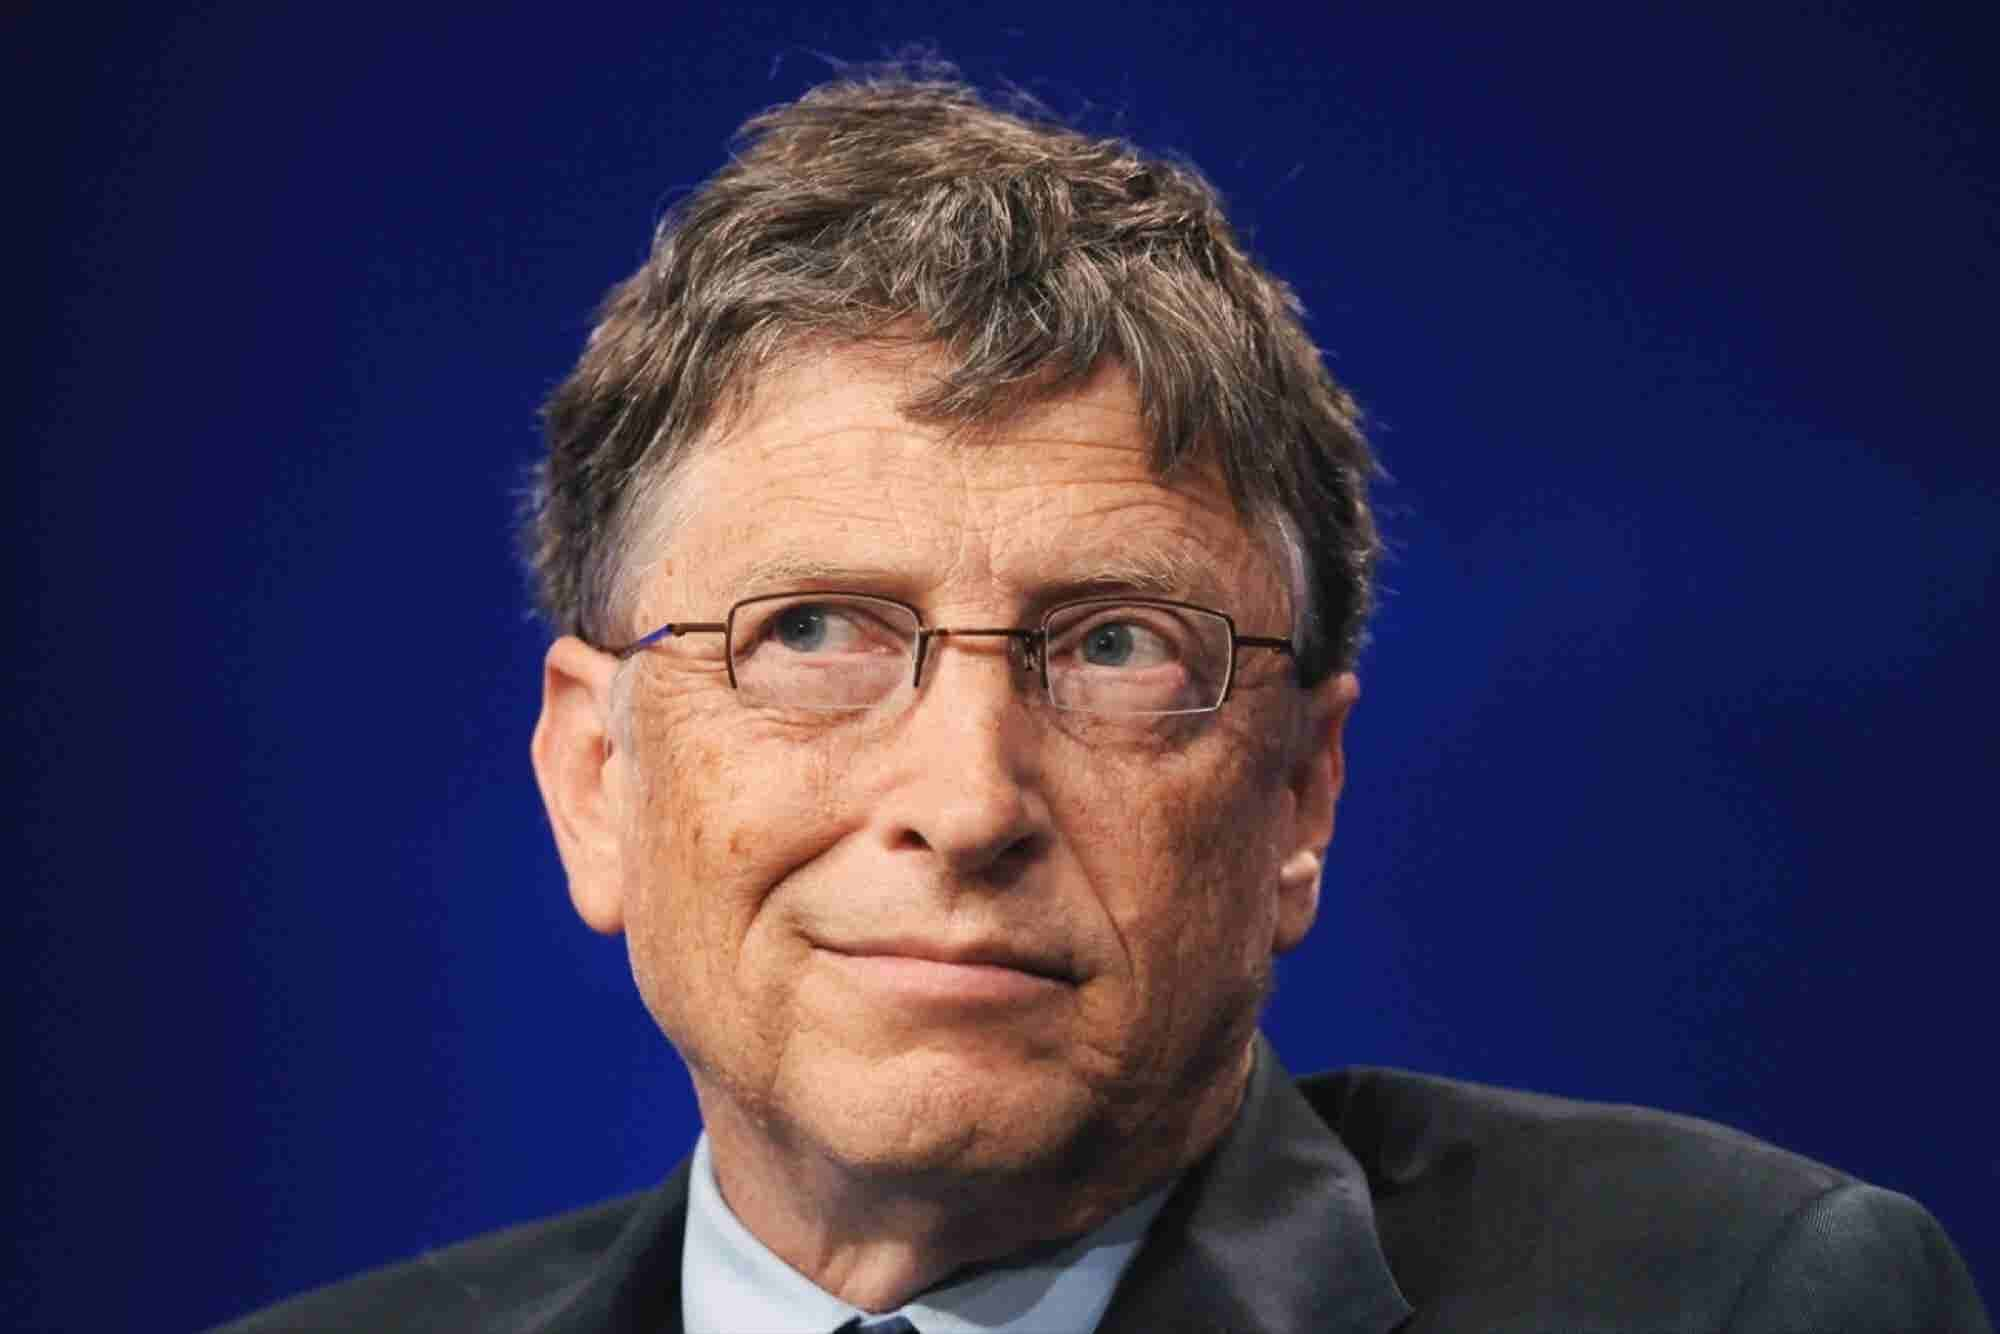 This Is What Bill Gates Says Makes Him Feel Powerless